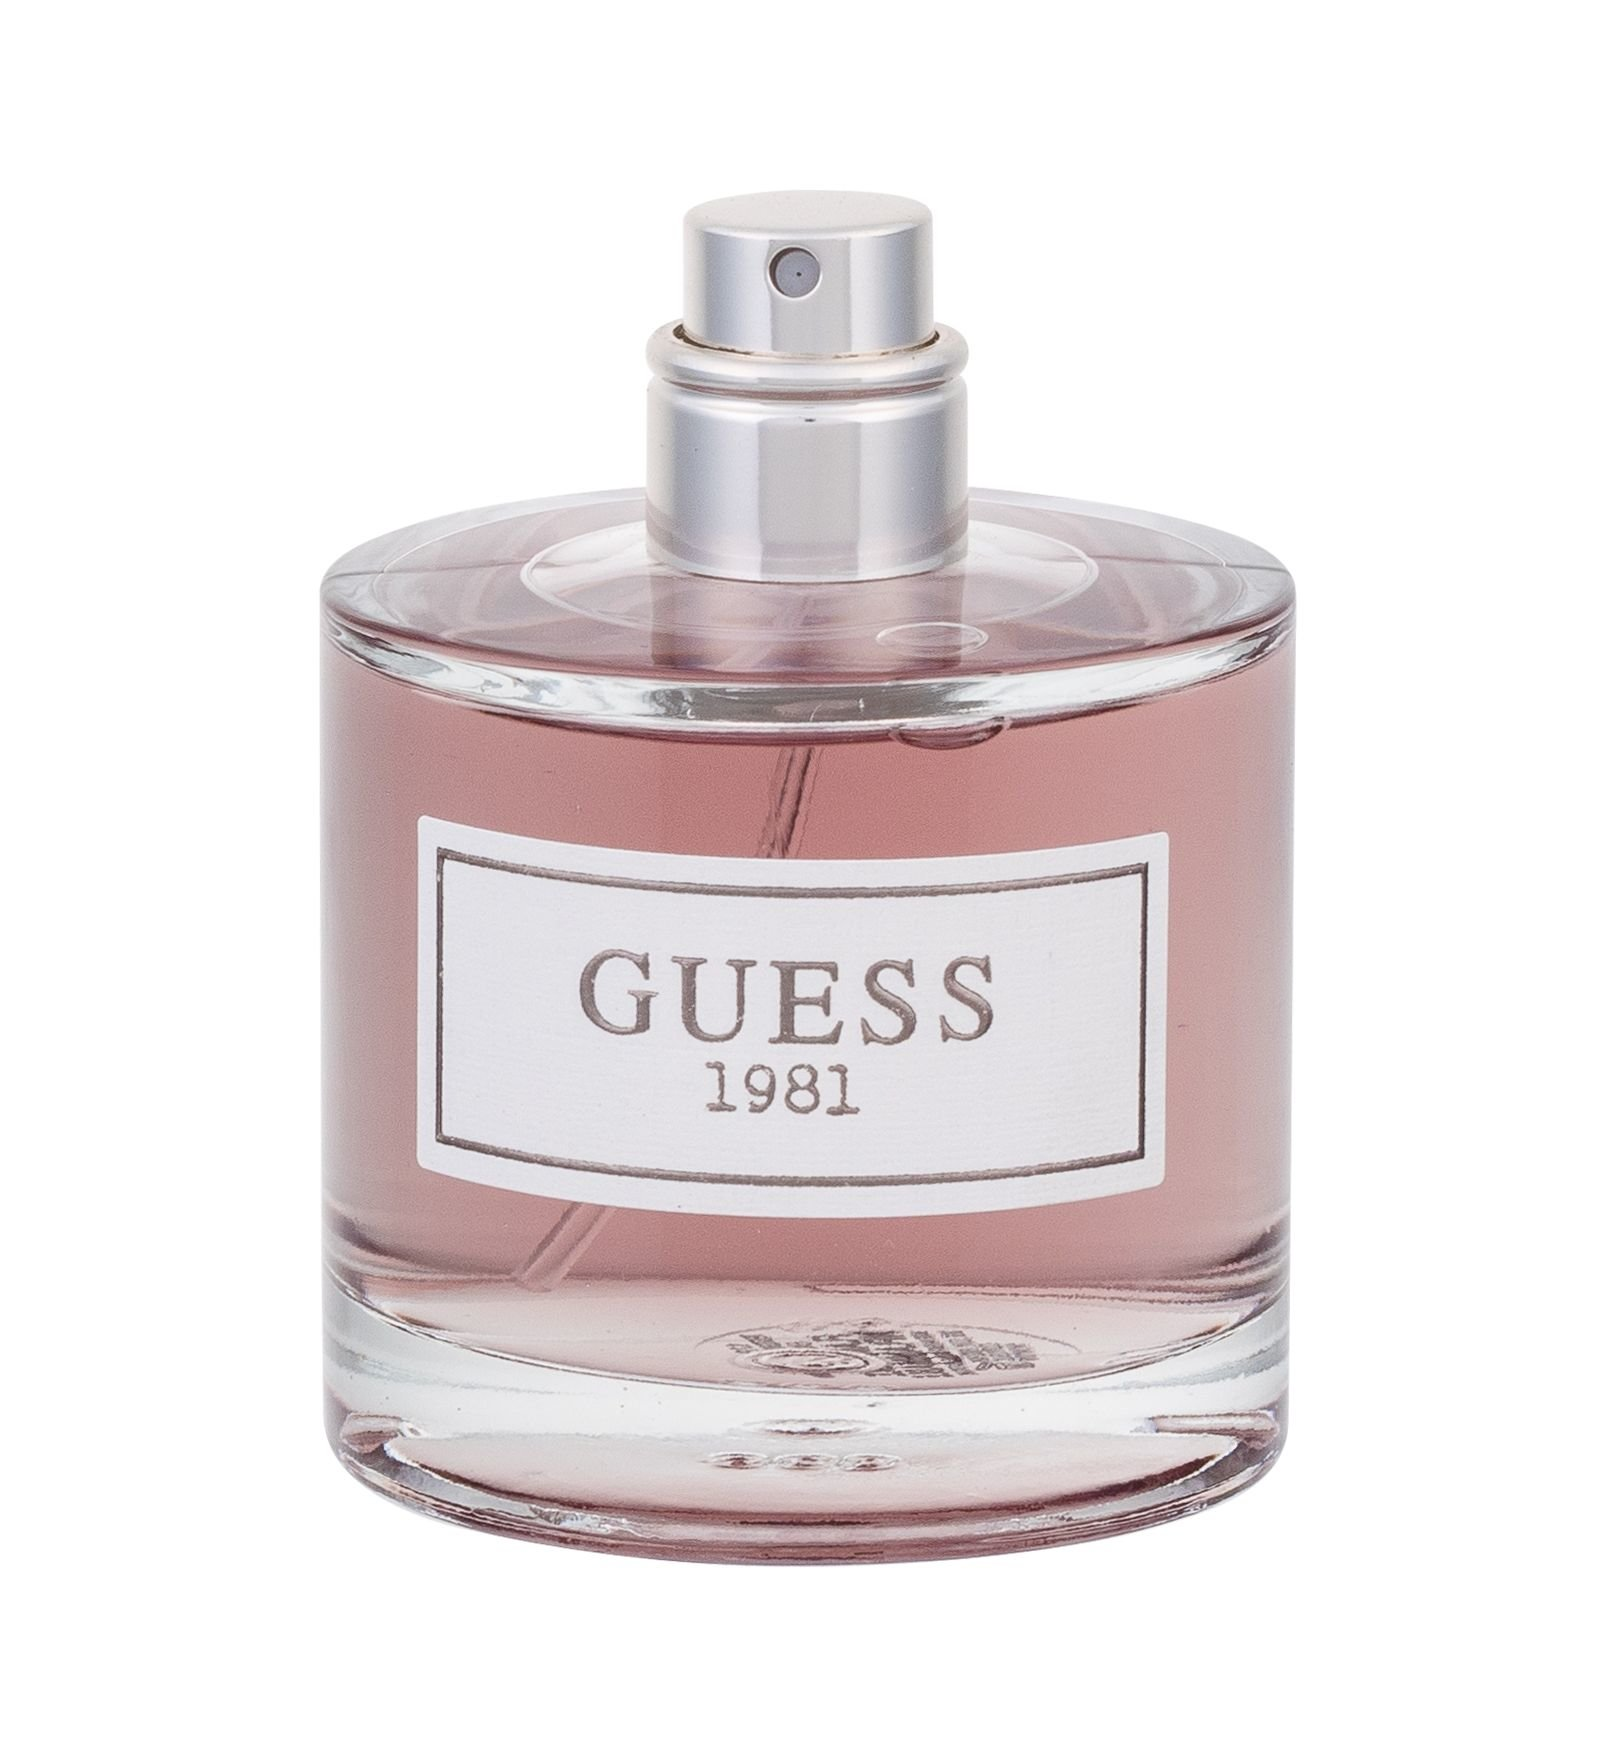 GUESS Guess 1981 (M)